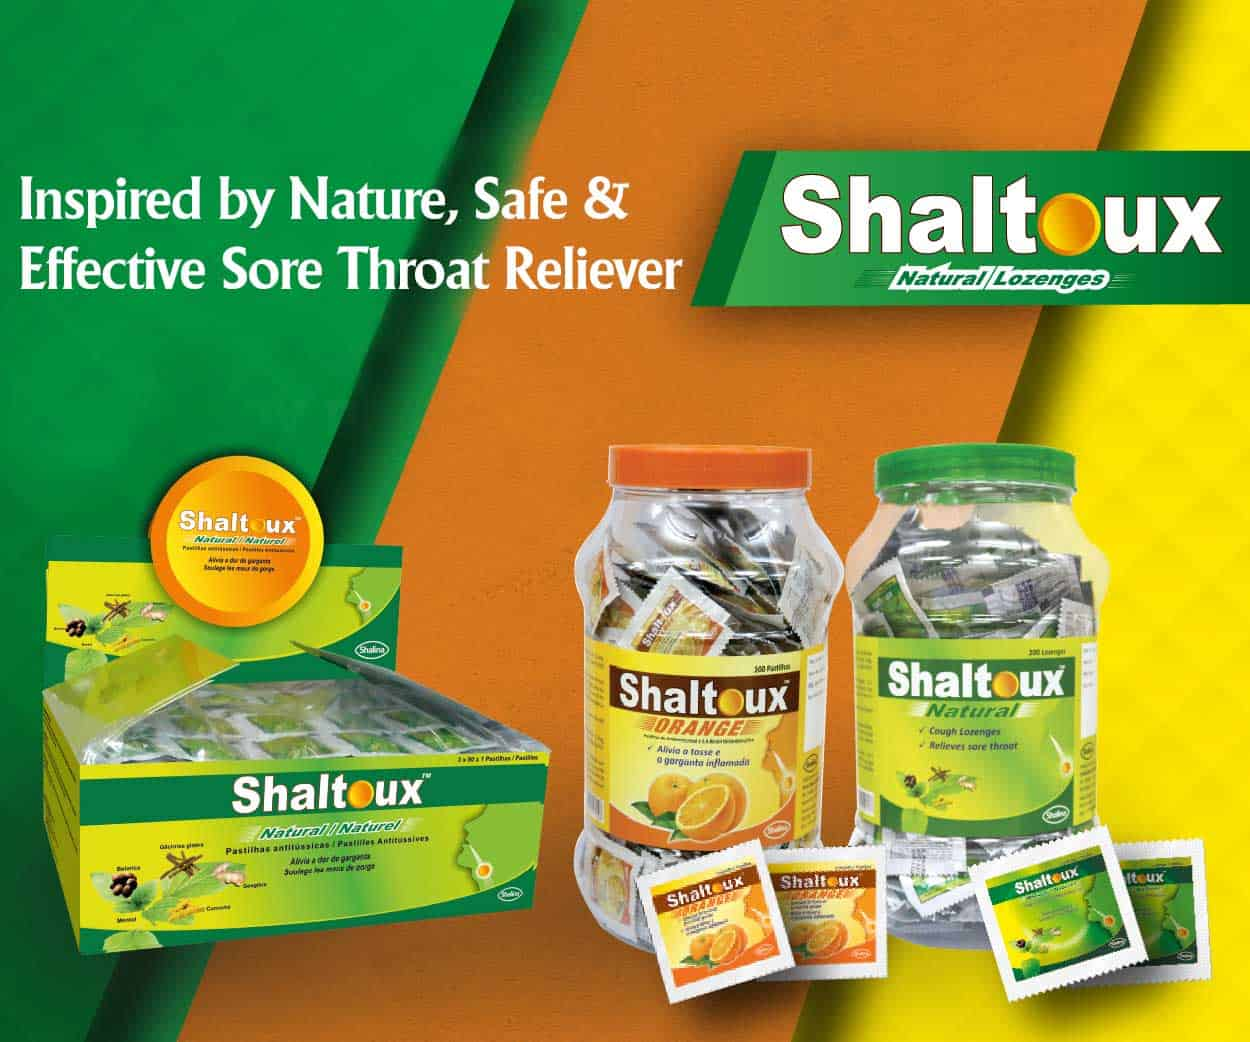 Shaltoux, inspired by nature